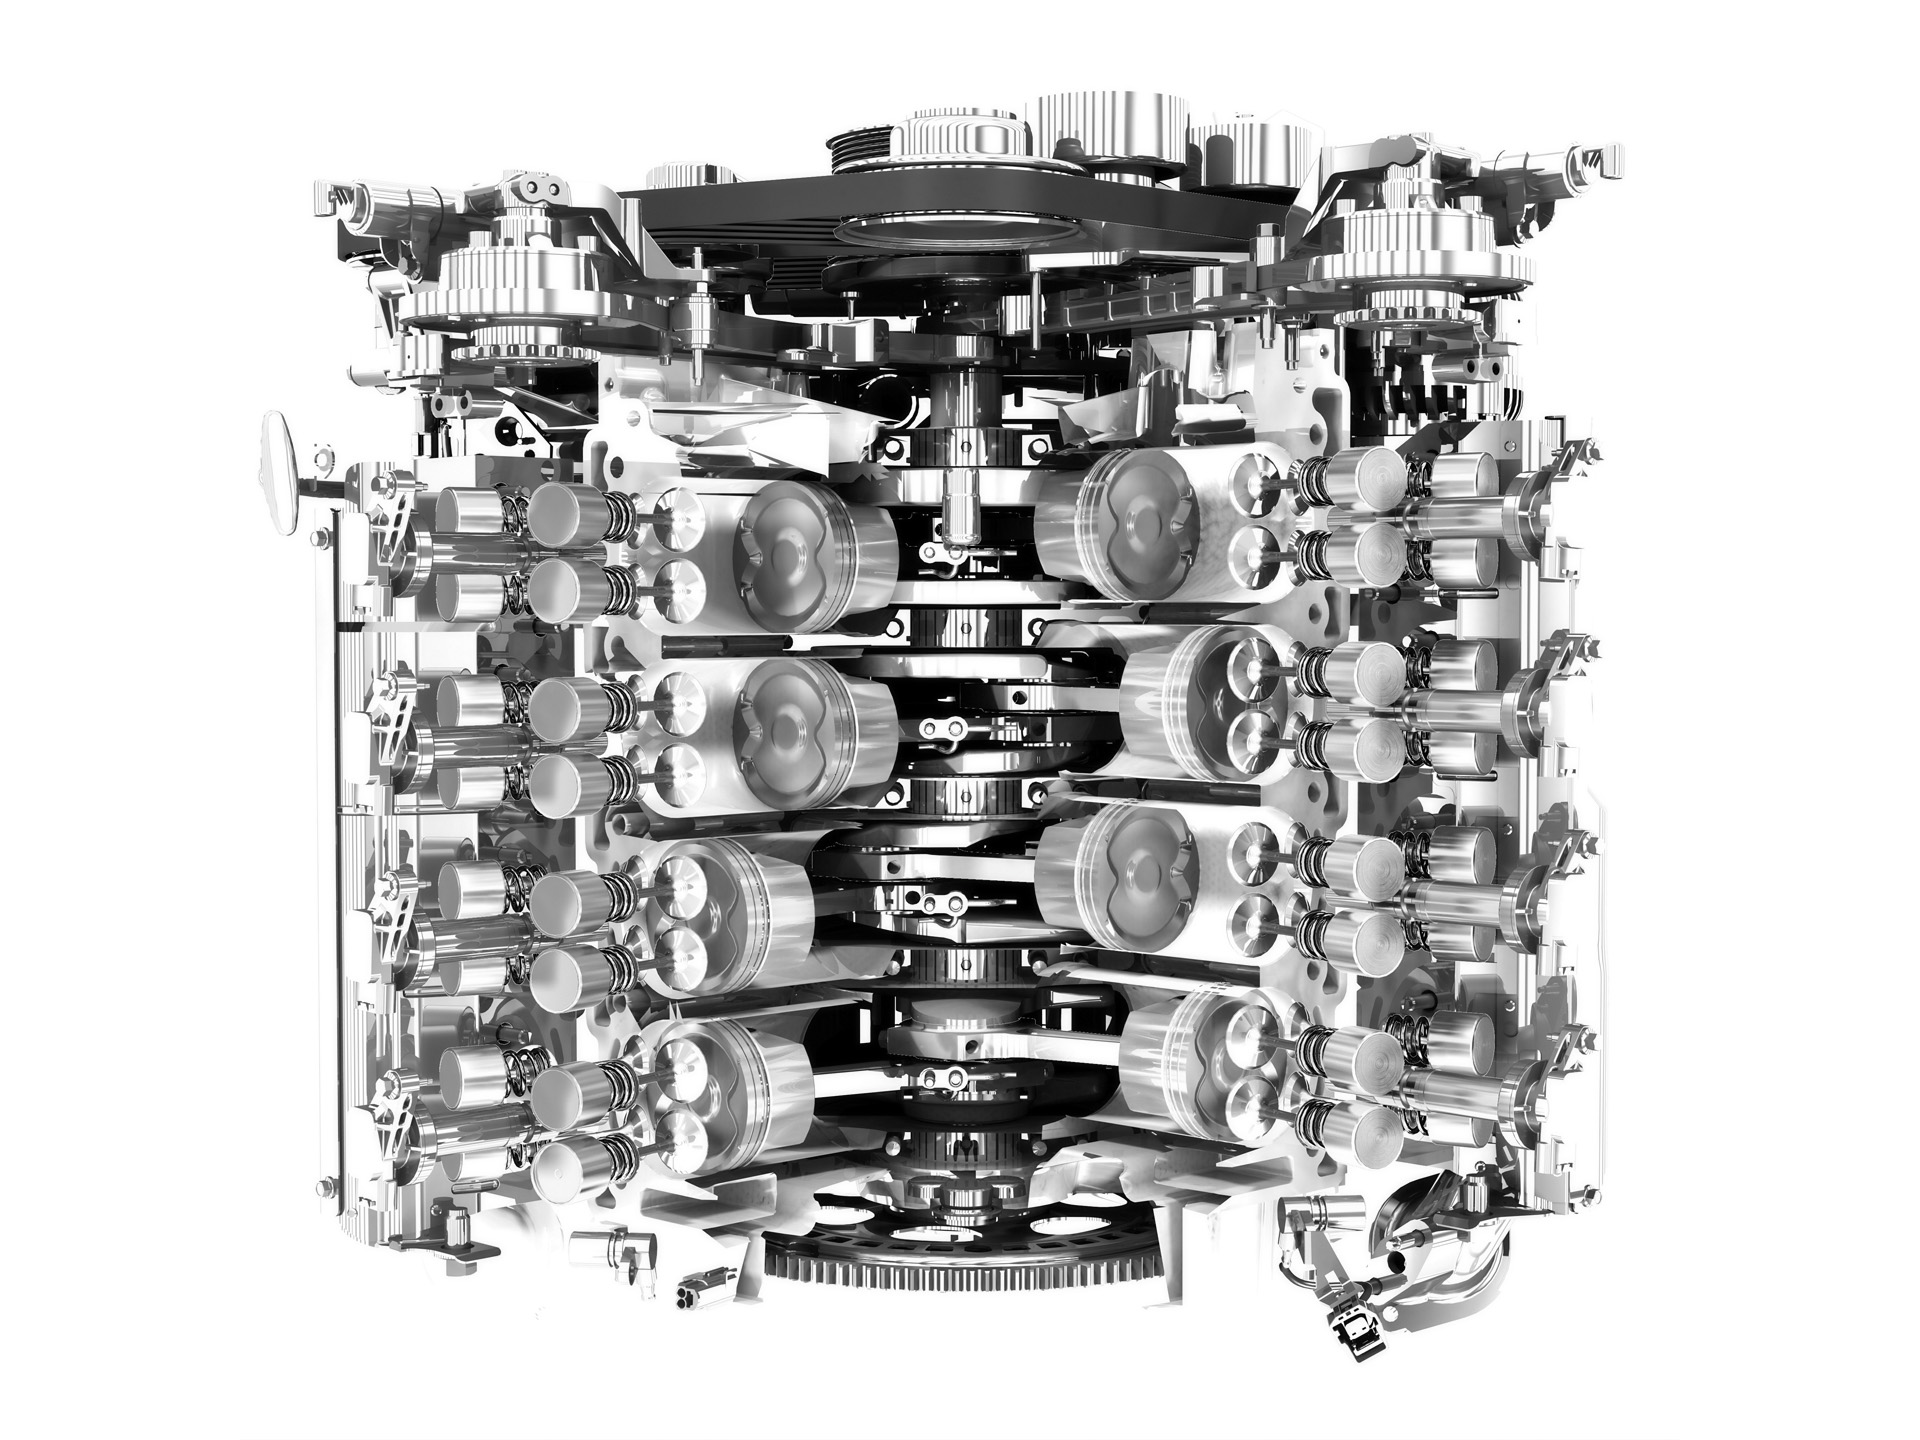 Sample P0580 Engine